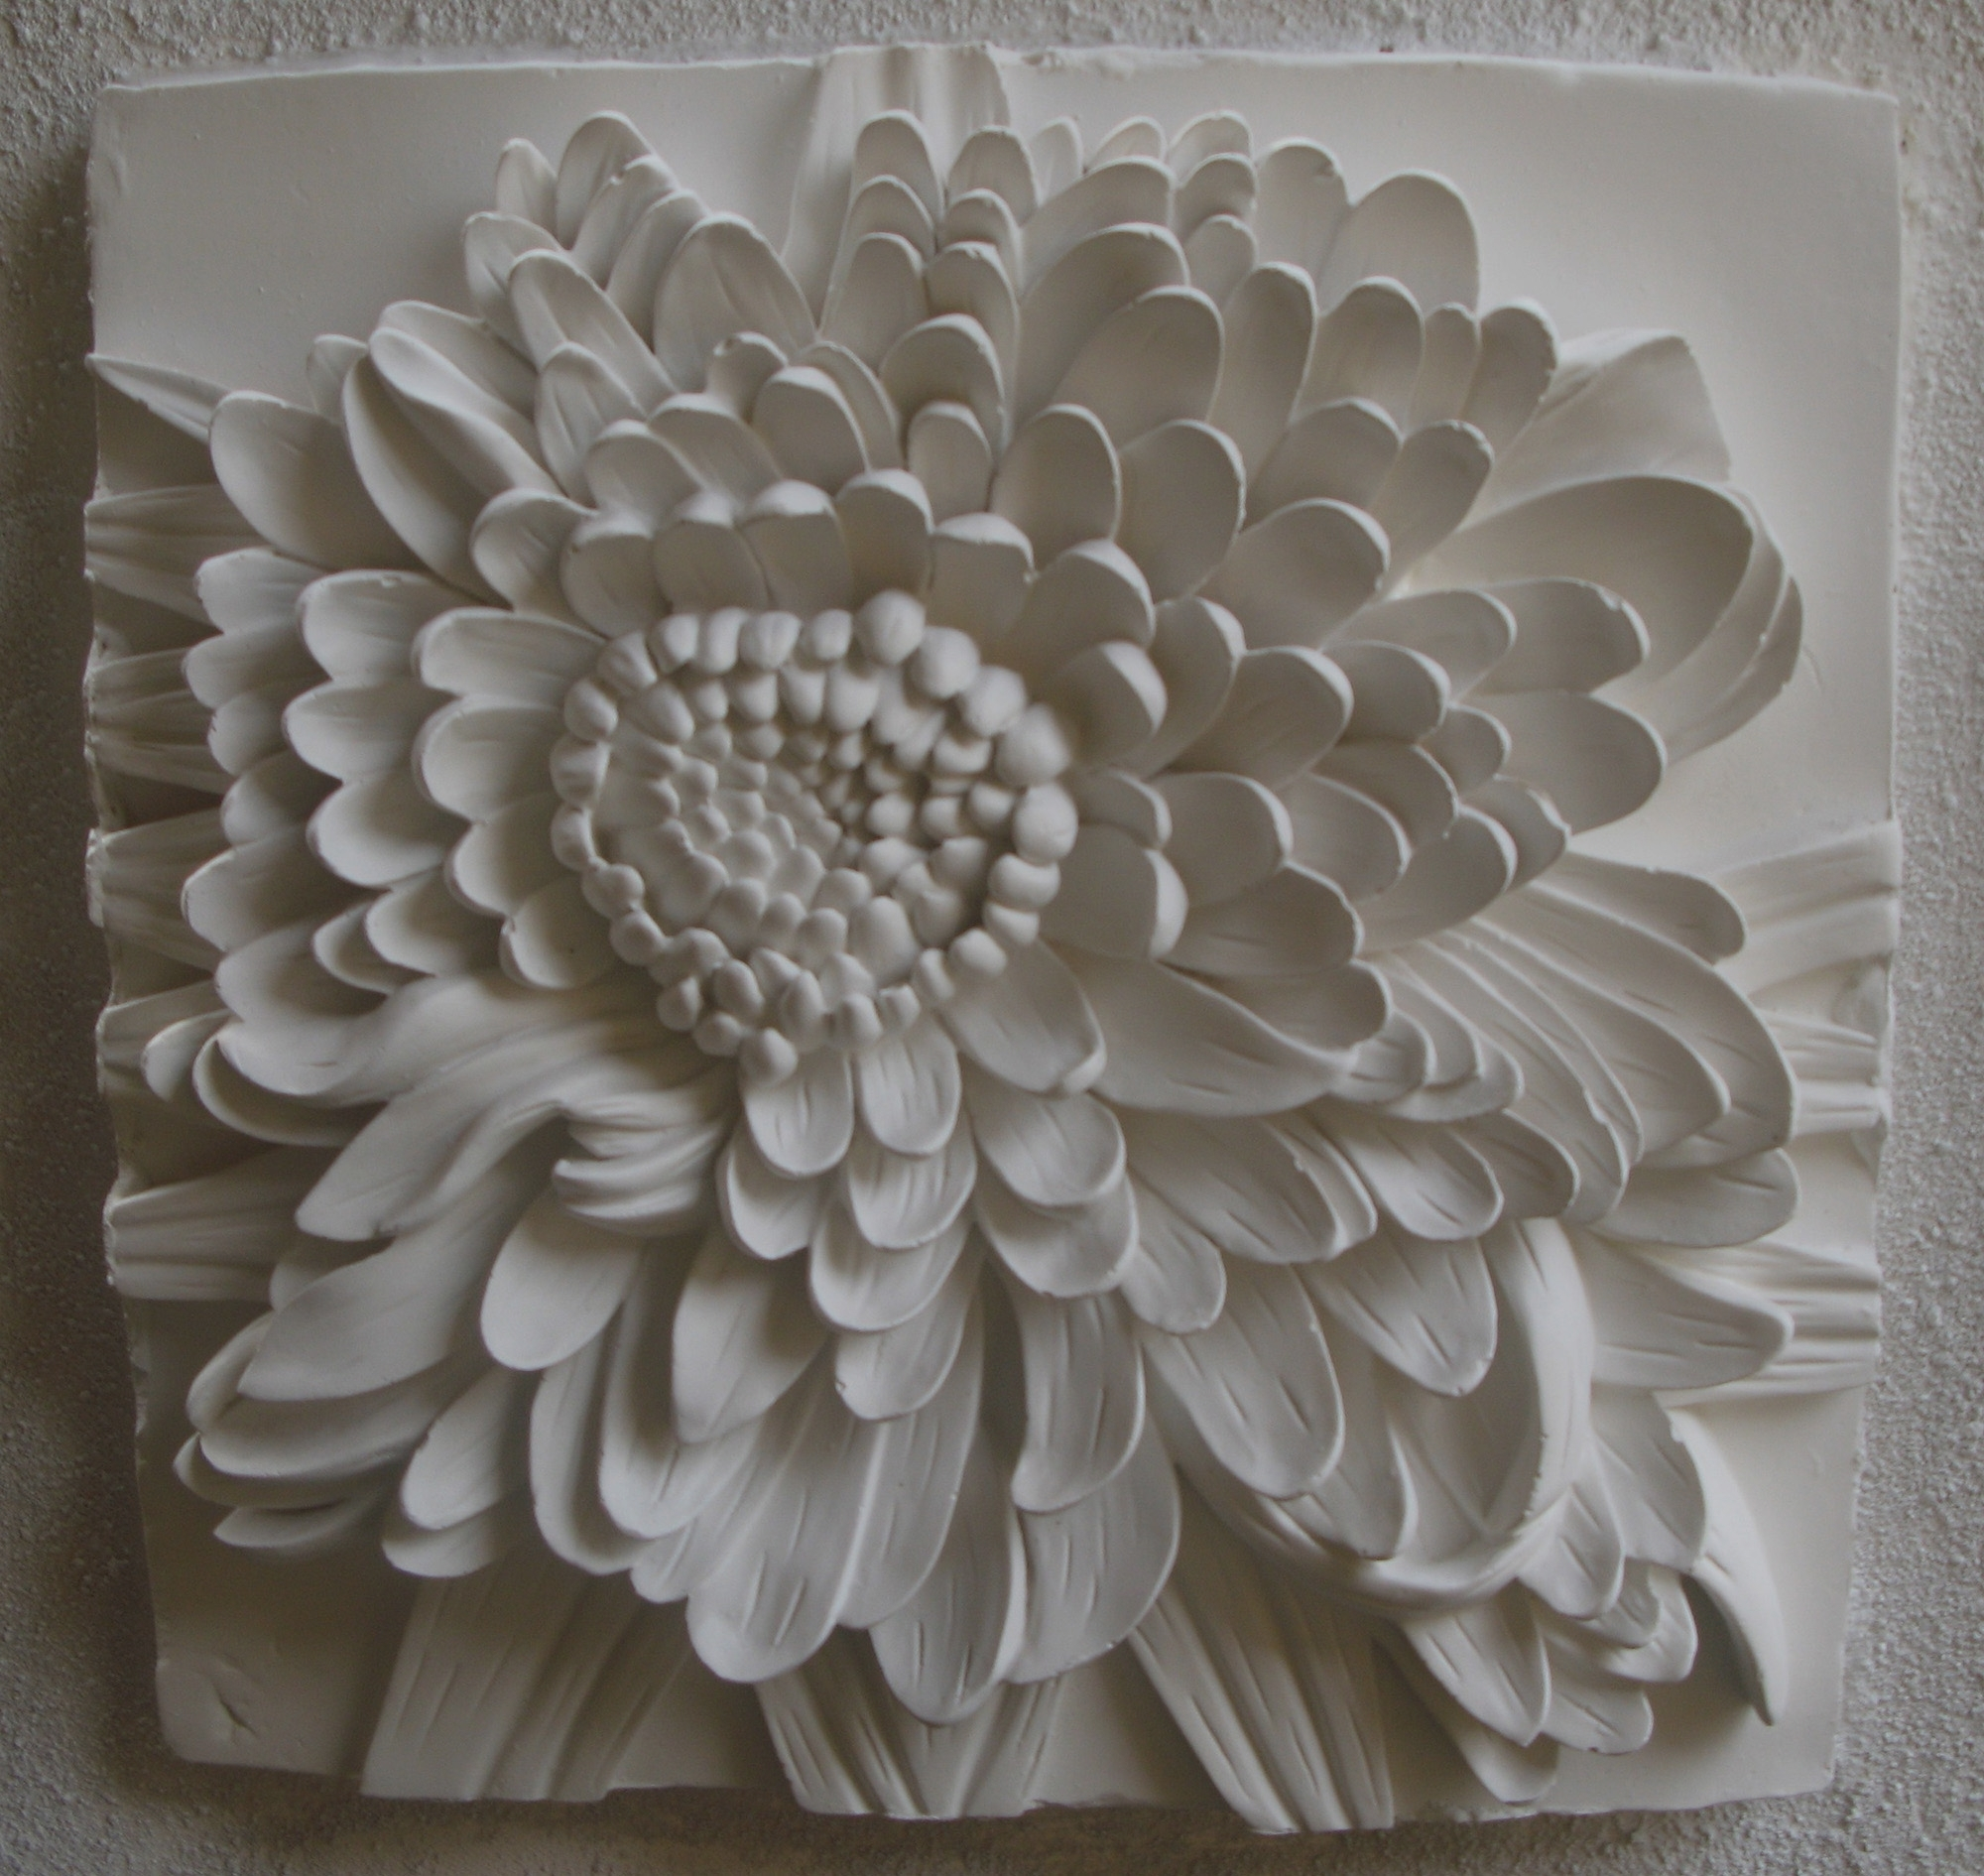 Most Recently Released Diy 3d Flower Canvas Wall Art Diy Mothers Day Gift Youtube Regarding 3d Wall Art Canvas (View 7 of 15)